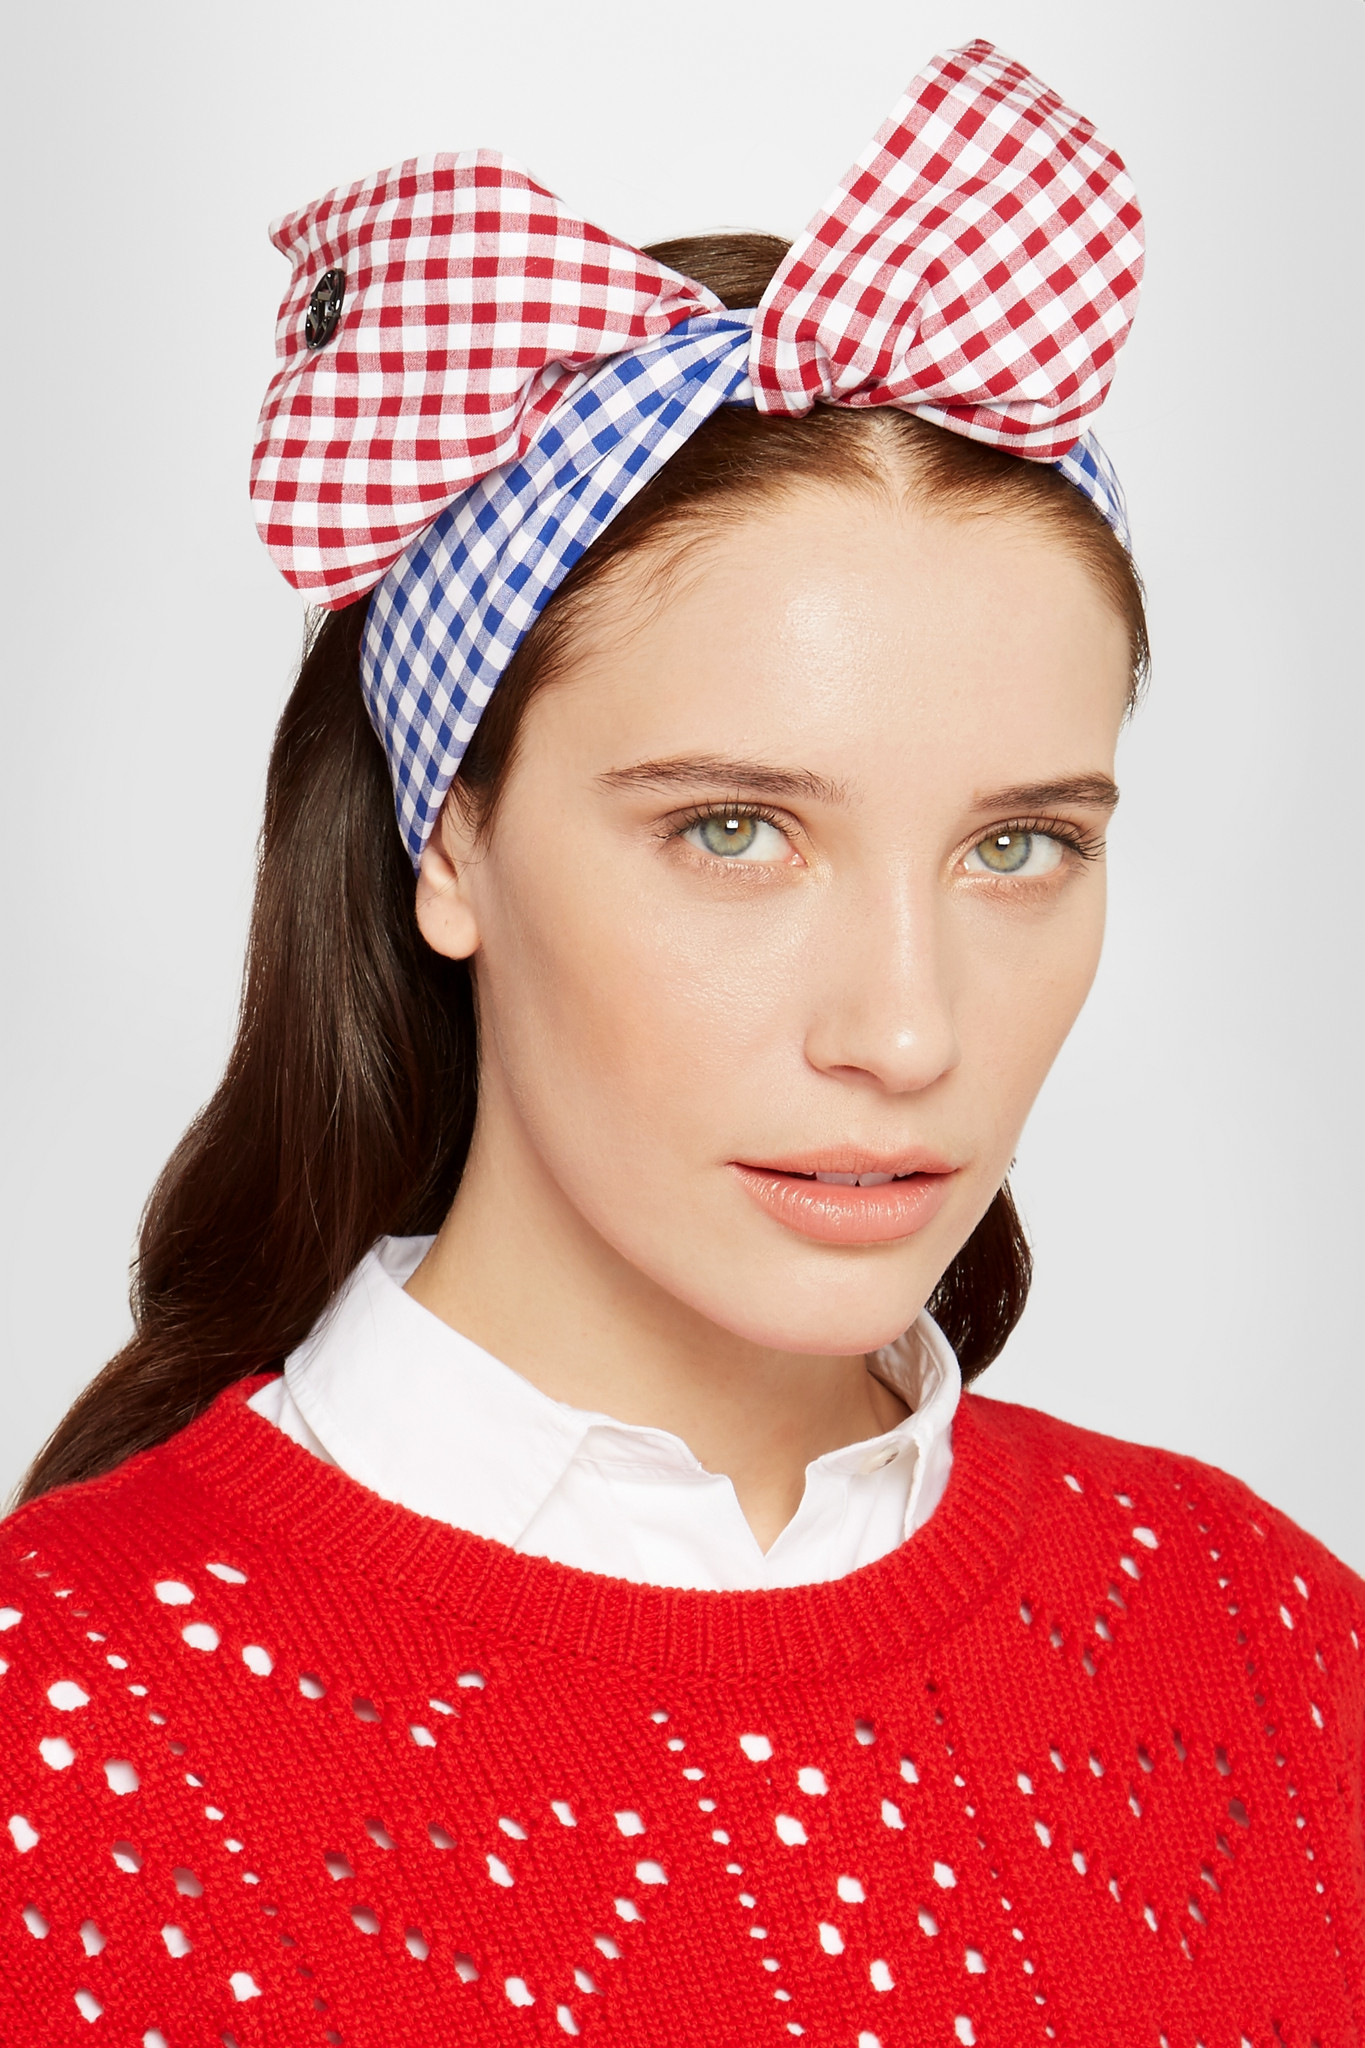 Lyst maison michel gingham knot headband in blue for Maison michel